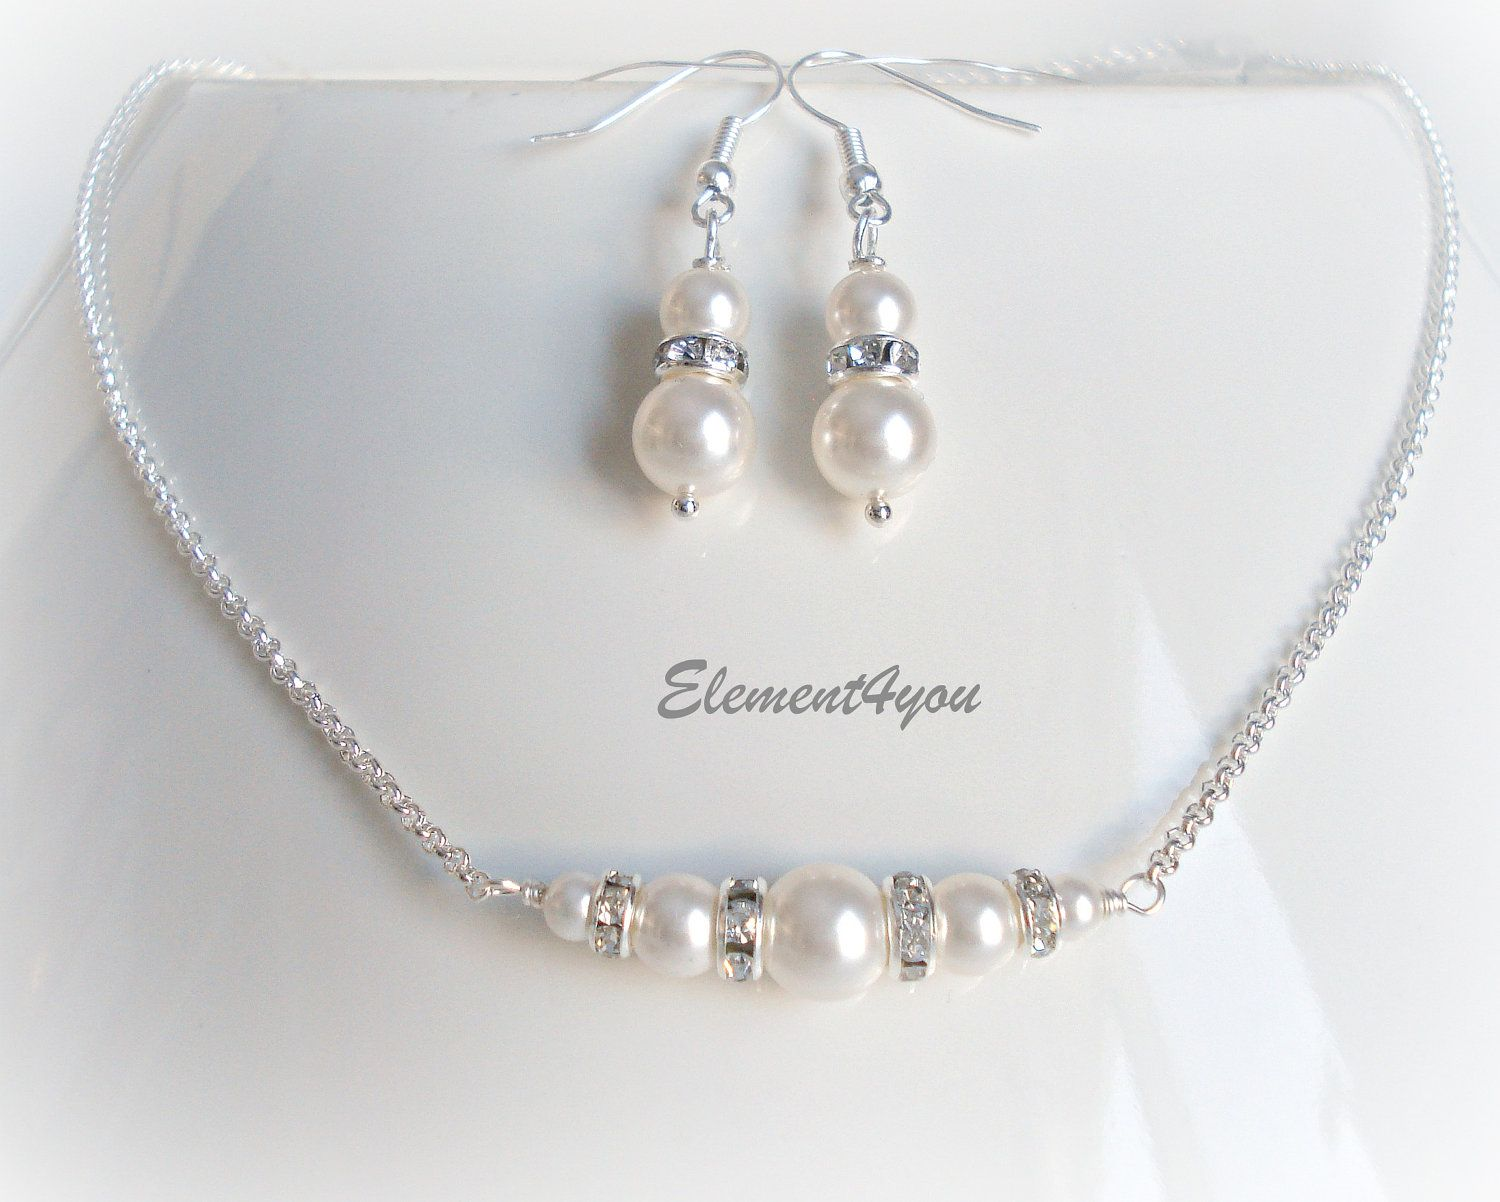 Bridesmaid Jewelry, Wedding Jewellery, Necklace Earrings set, Silver Chain, Delicate set, Swarovski pearls, Bridal Party Gift, Simple.